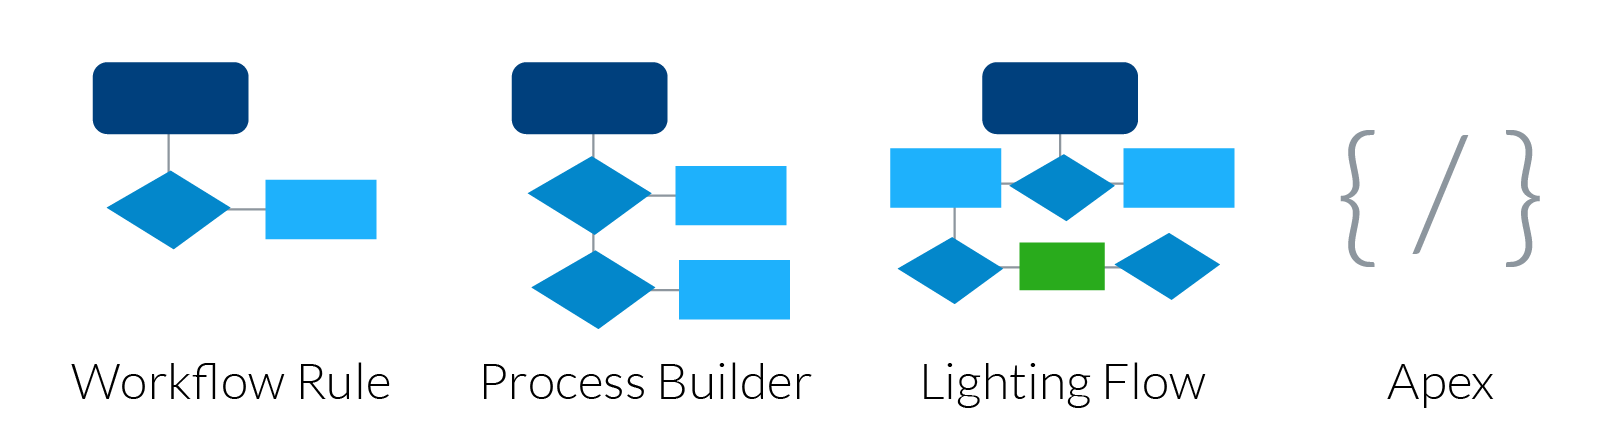 solution-workflow-process